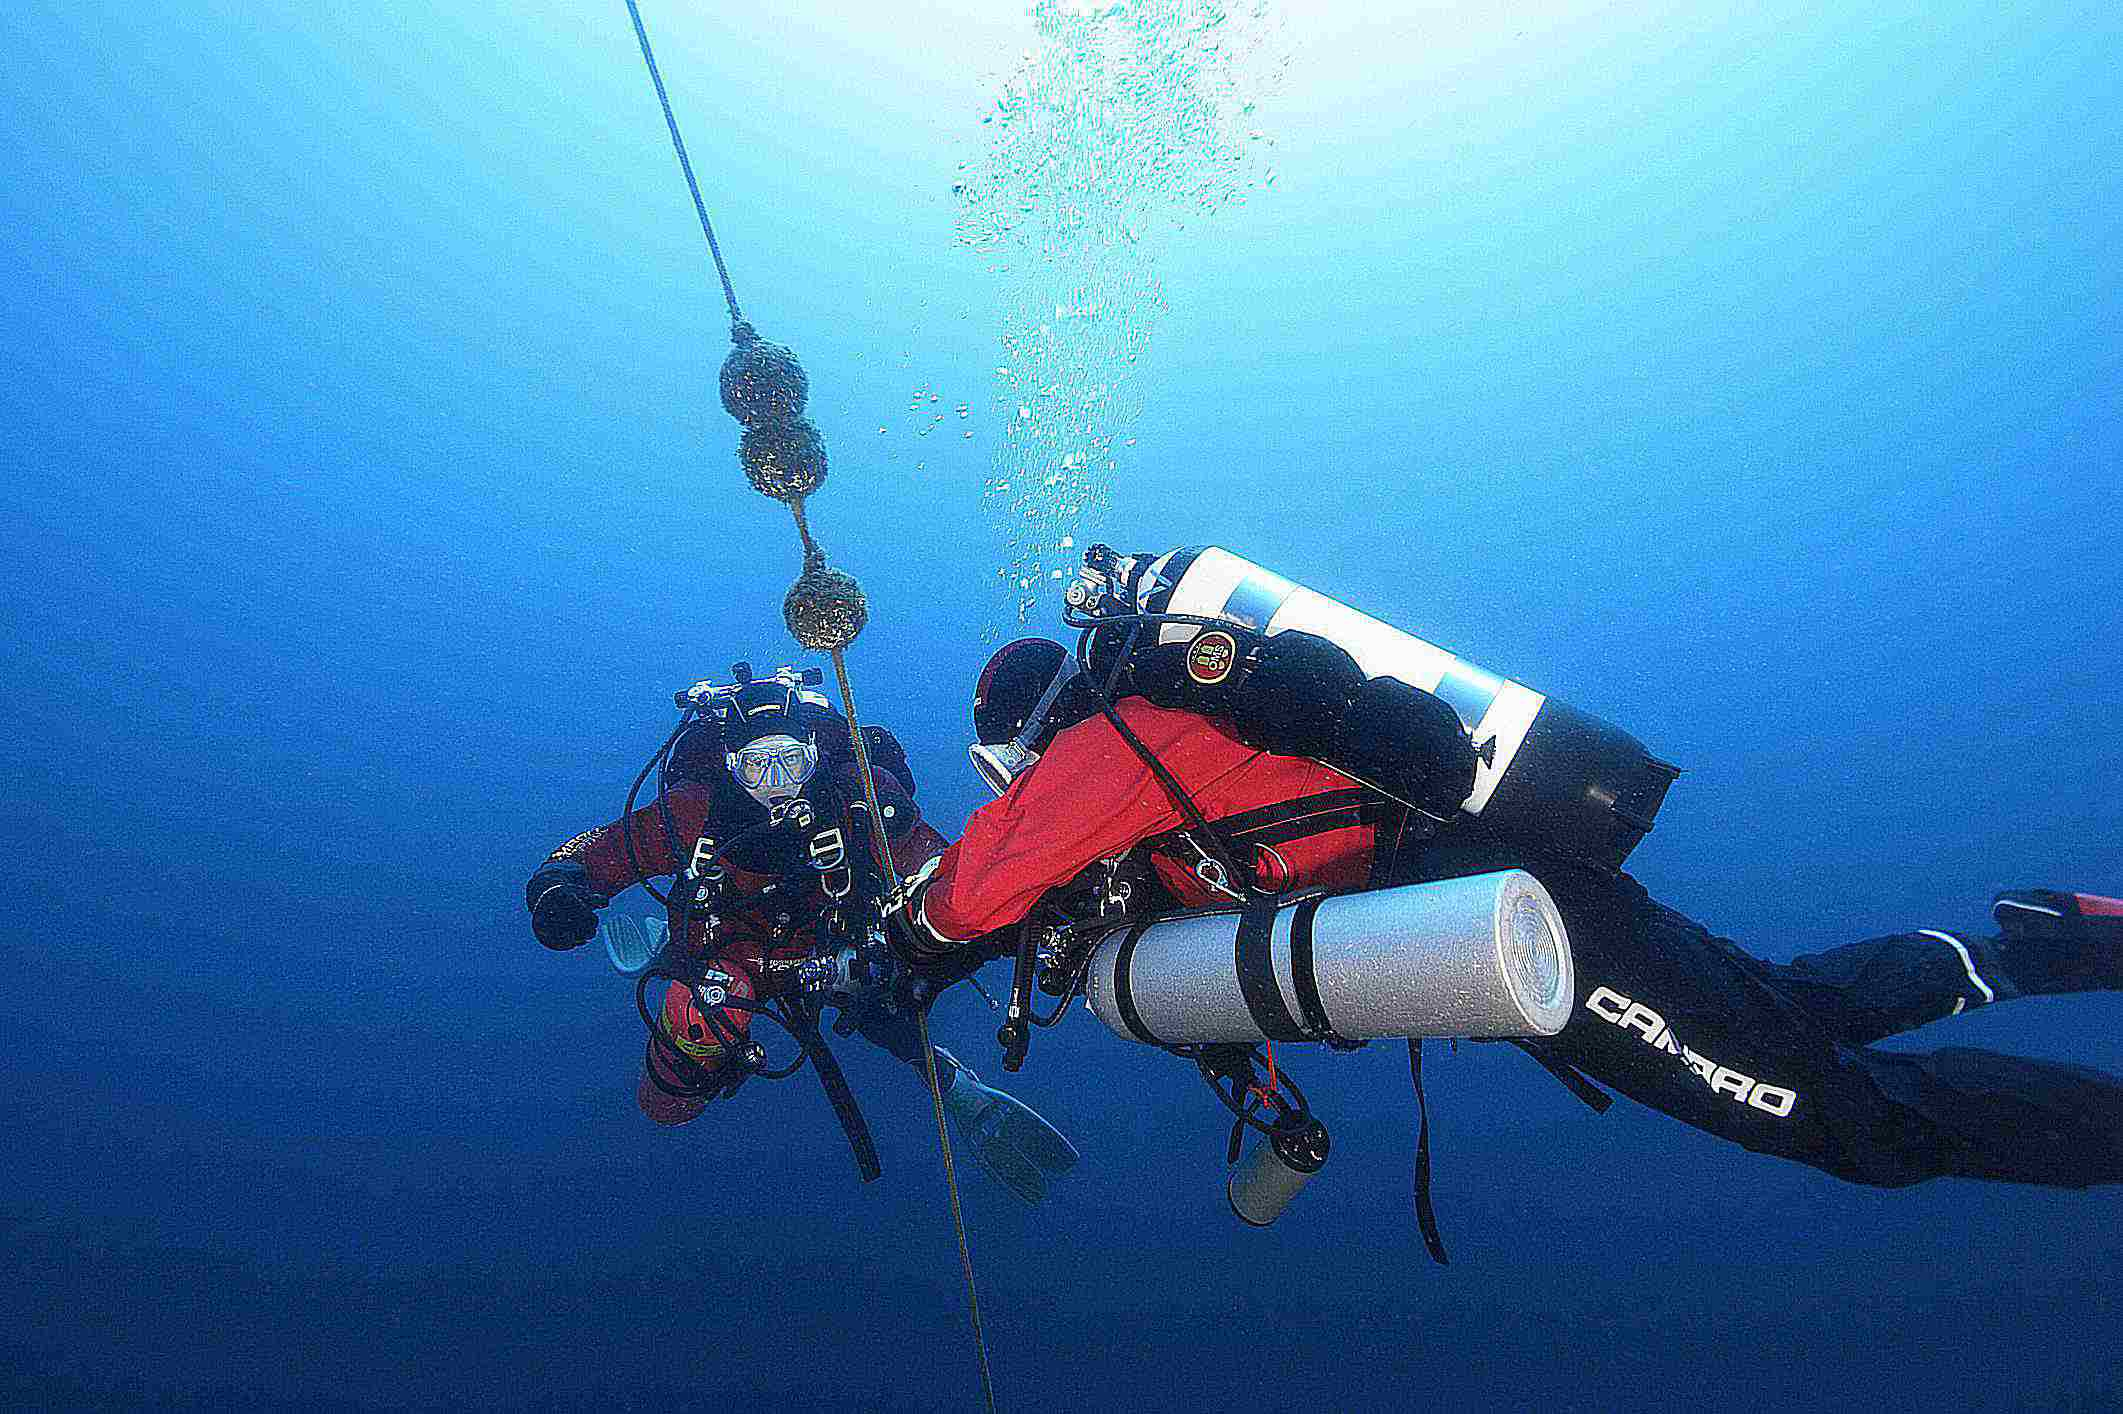 Technical divers using drysuits underwater